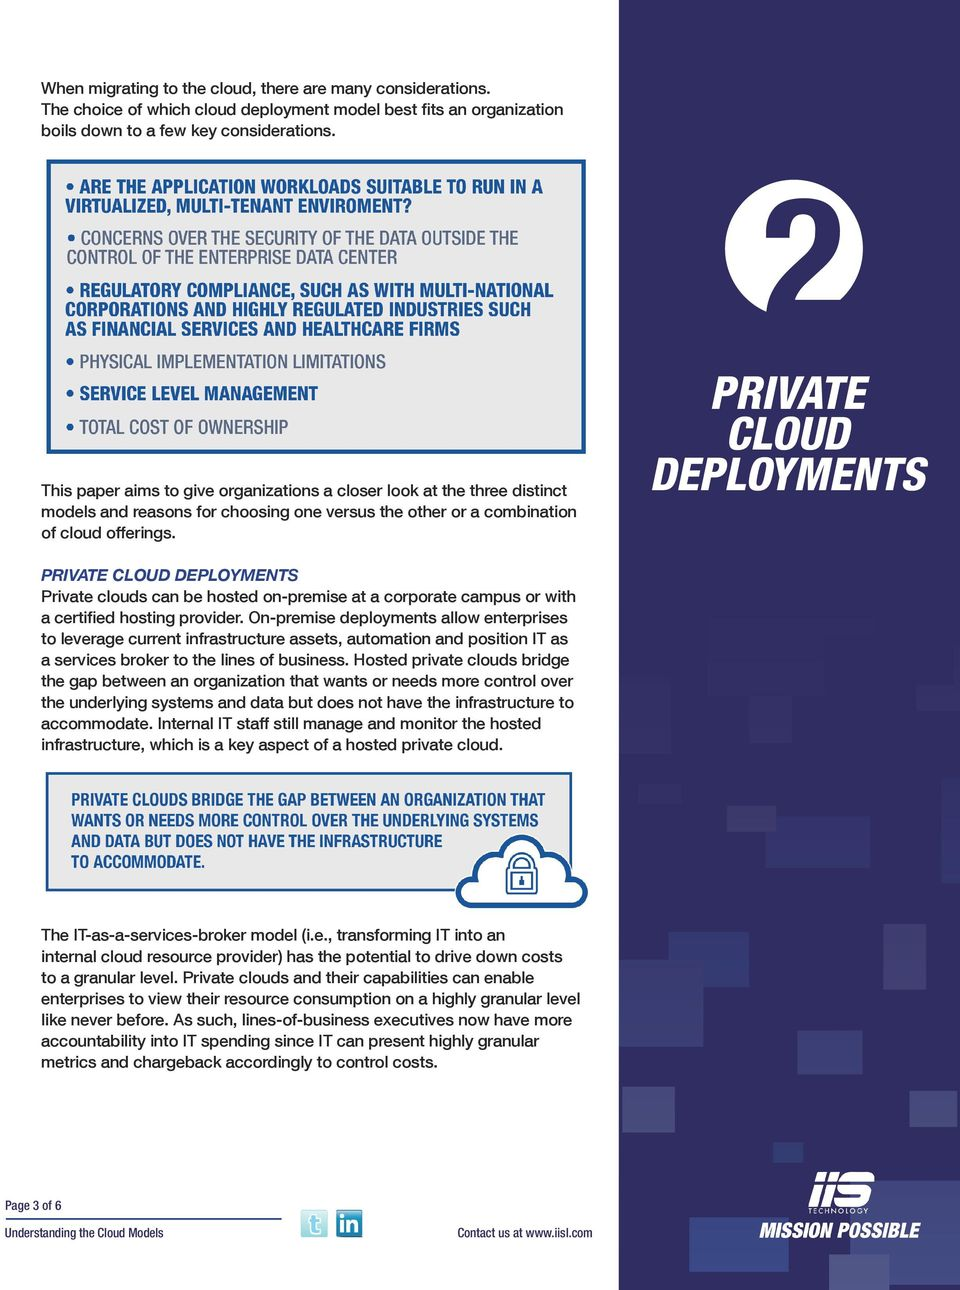 PRIVATE PRIVATE Private clouds can be hosted on-premise at a corporate campus or with a certified hosting provider.